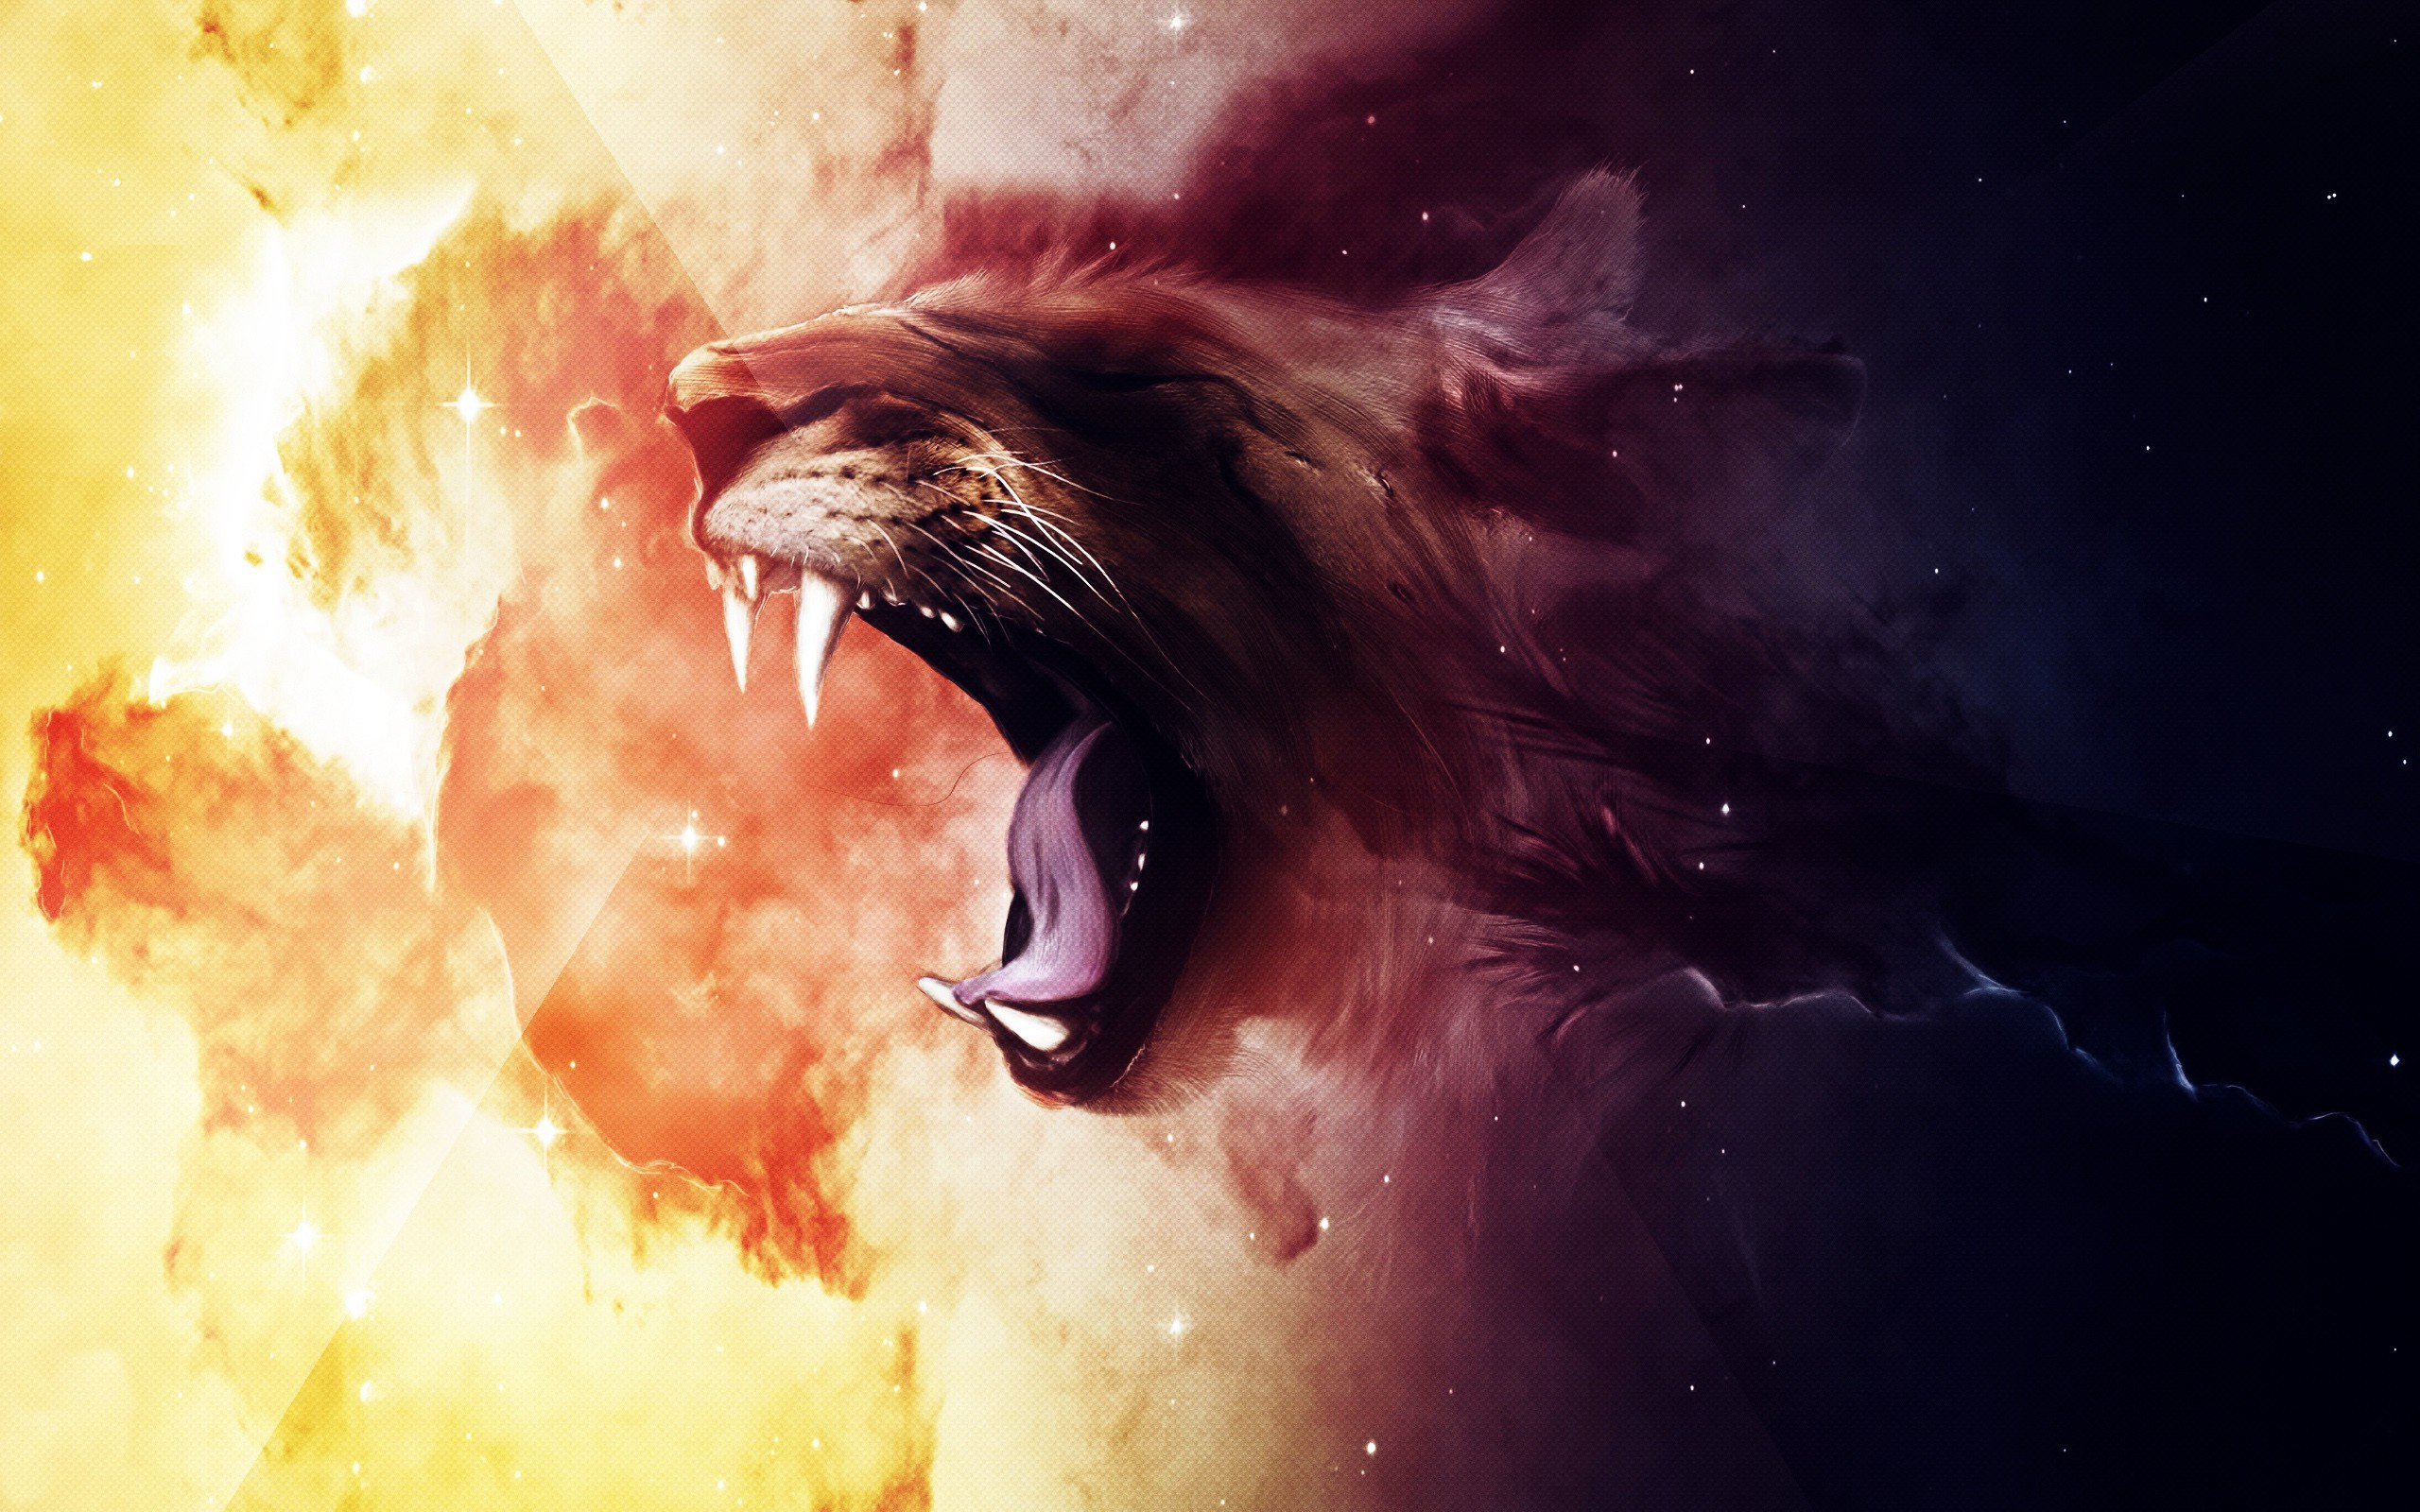 roaring lion, hd creative, 4k wallpapers, images, backgrounds